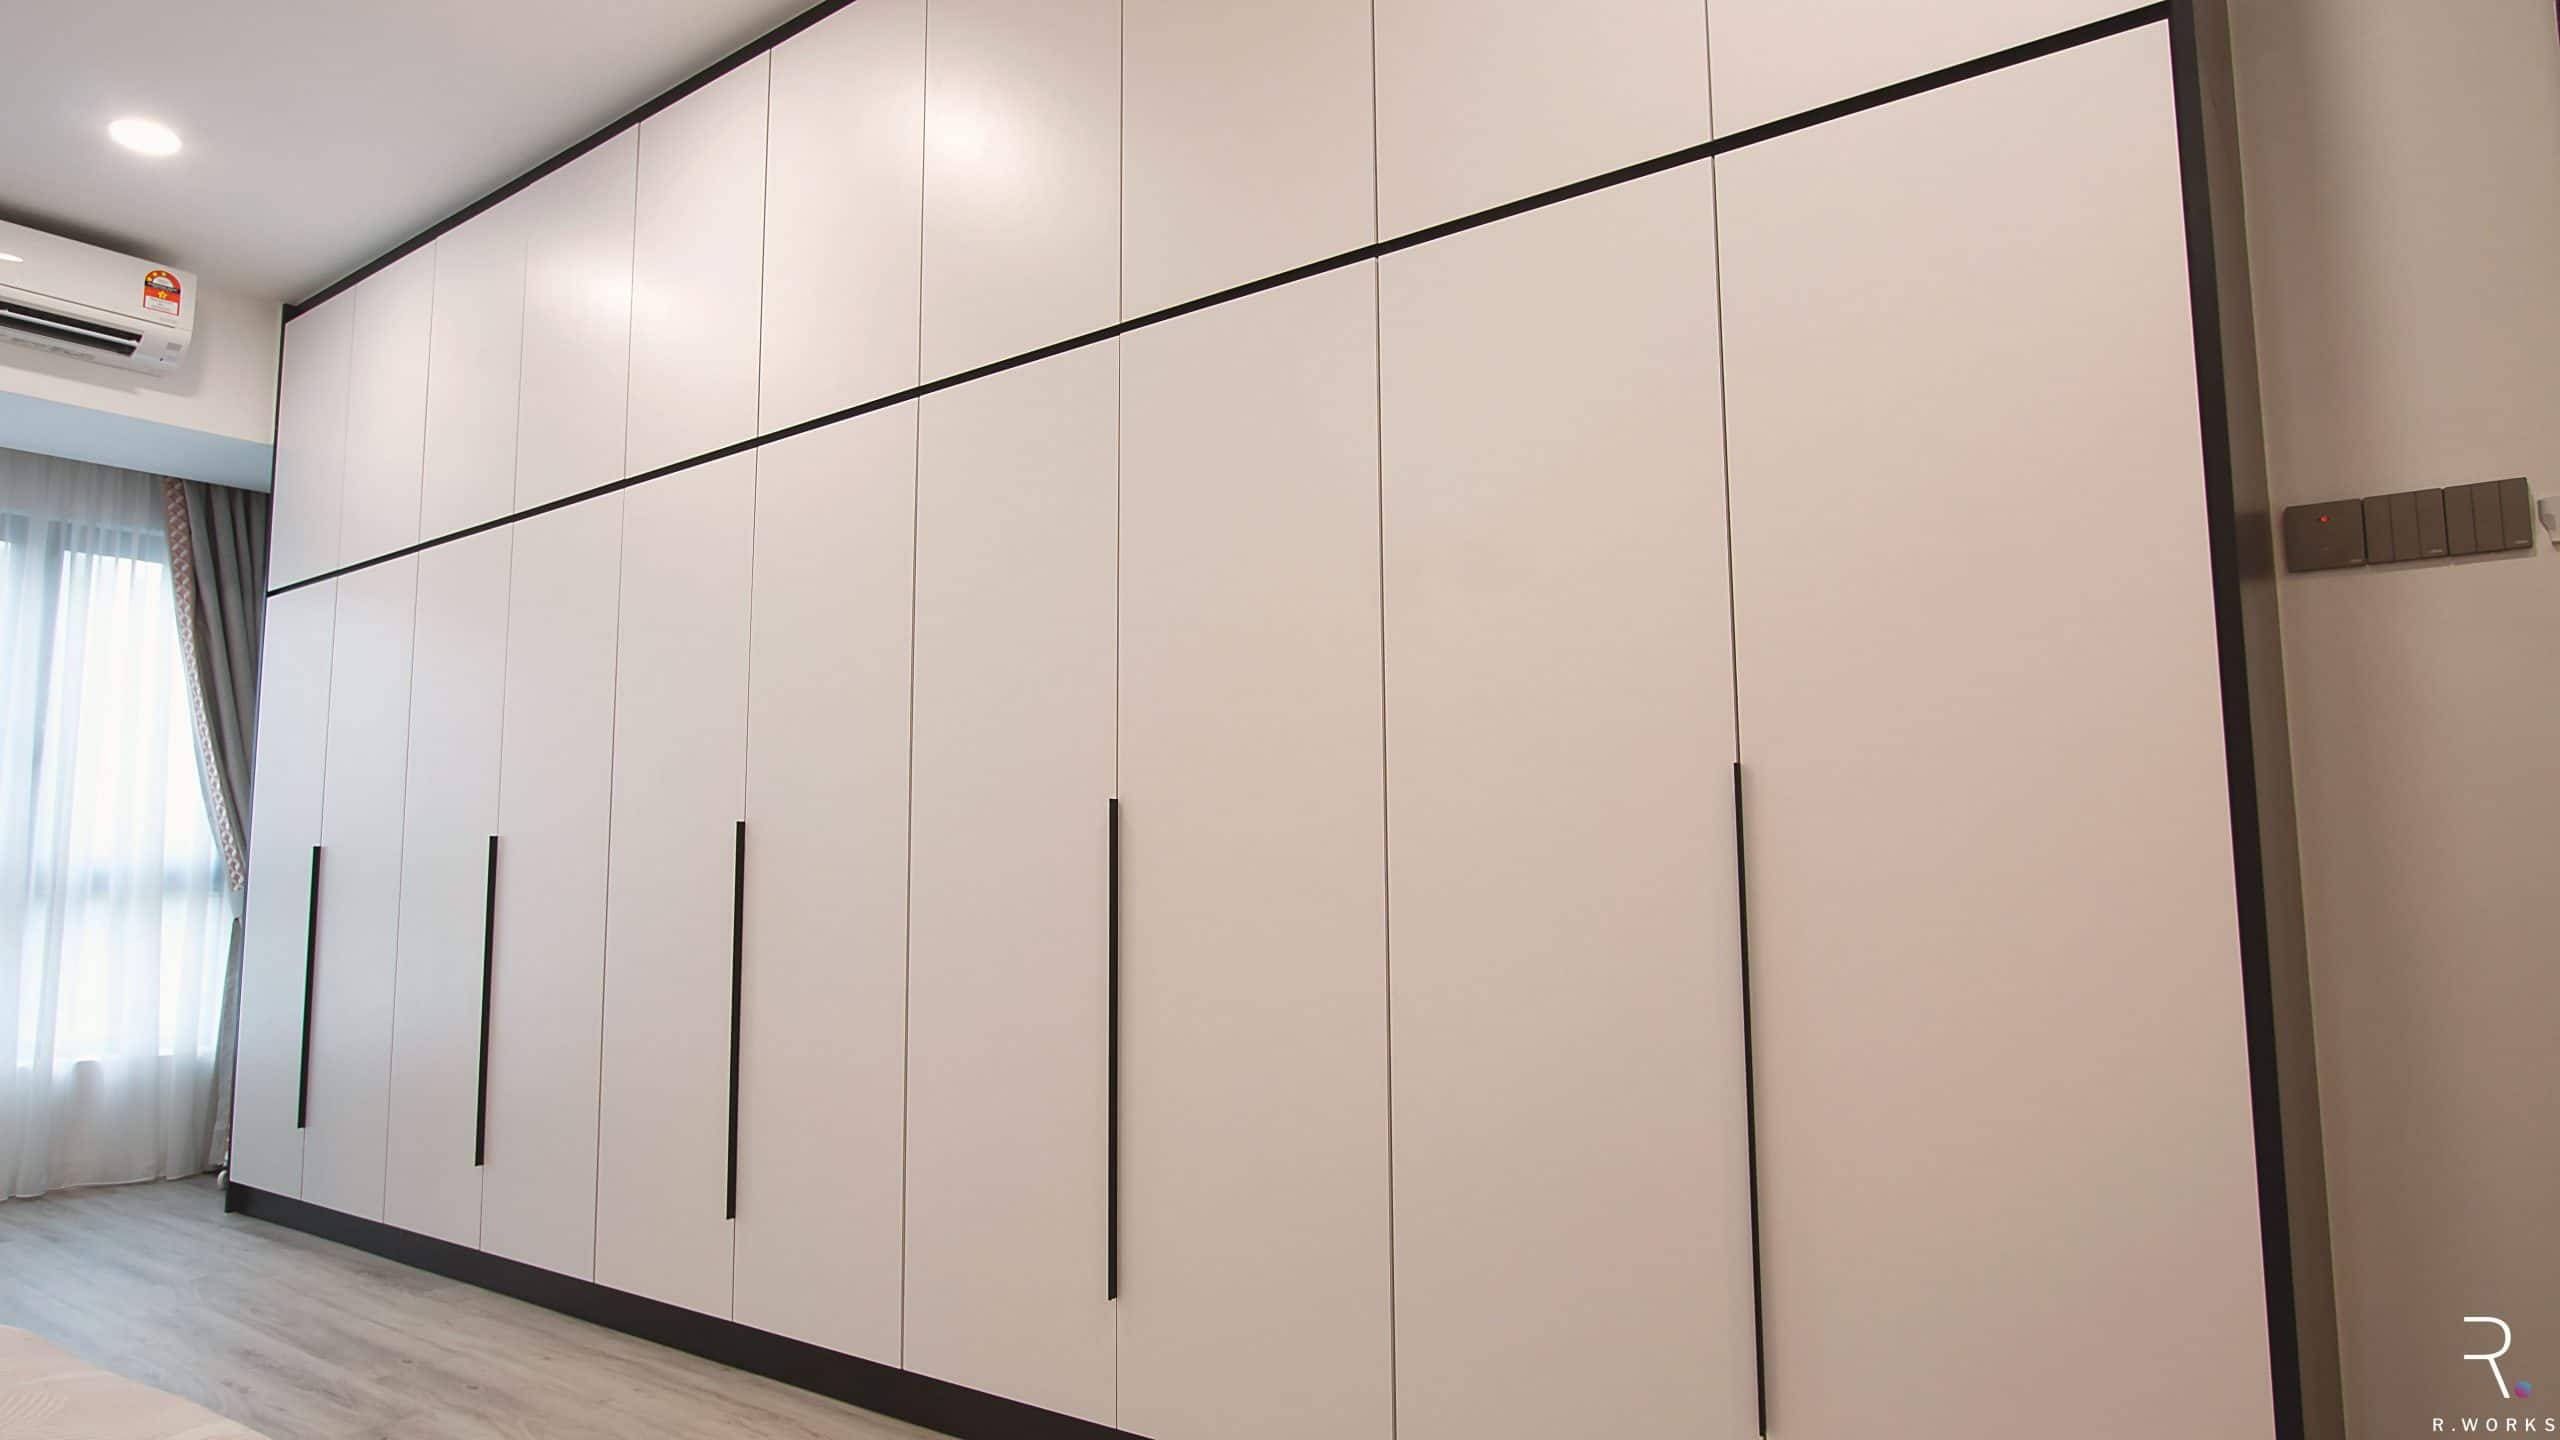 White built-in cabinets for townhouse interior design